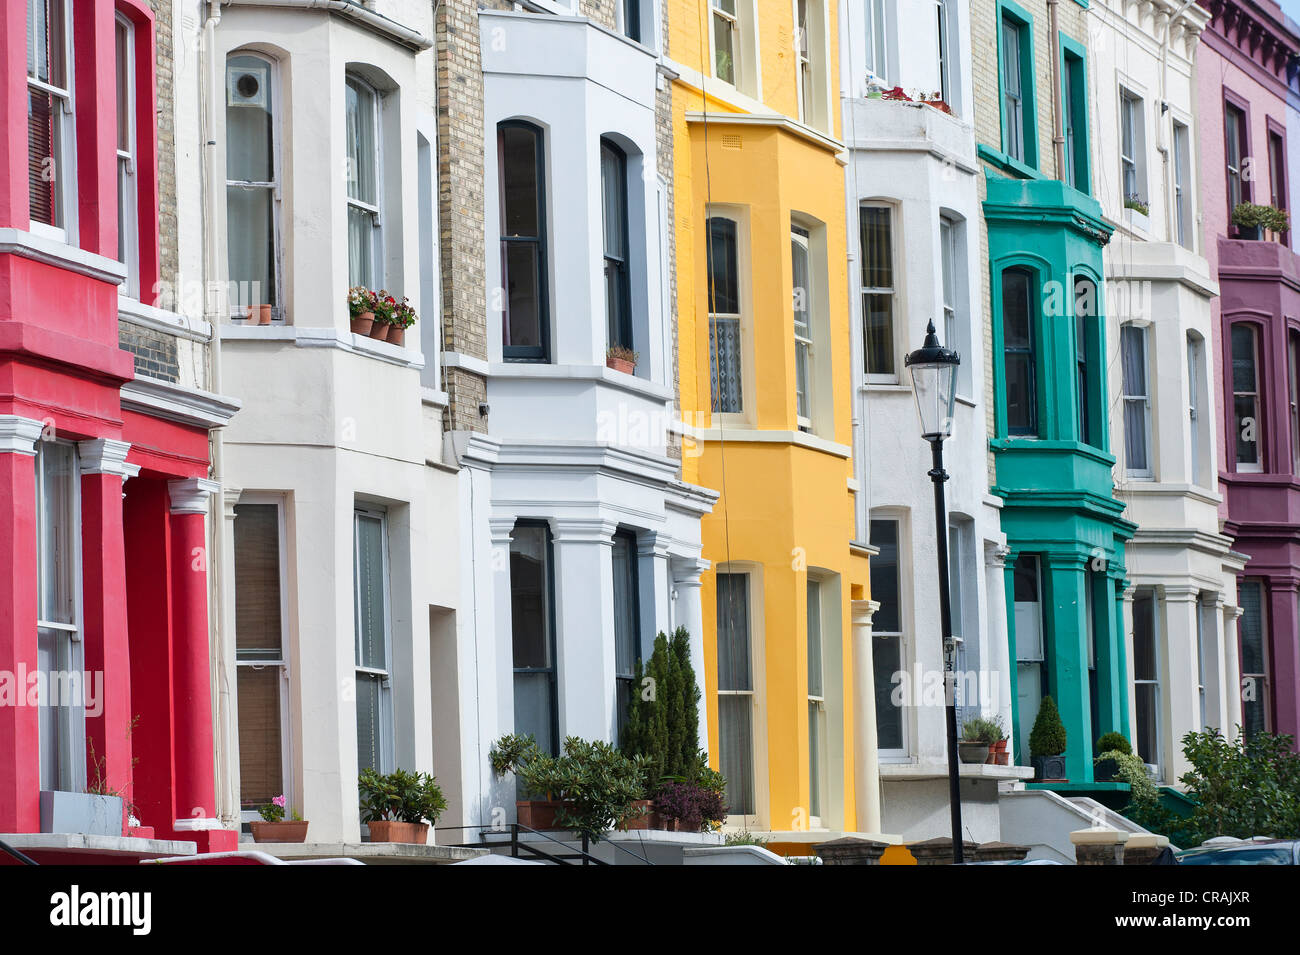 Notting hill london houses colourful stock photos for House notting hill